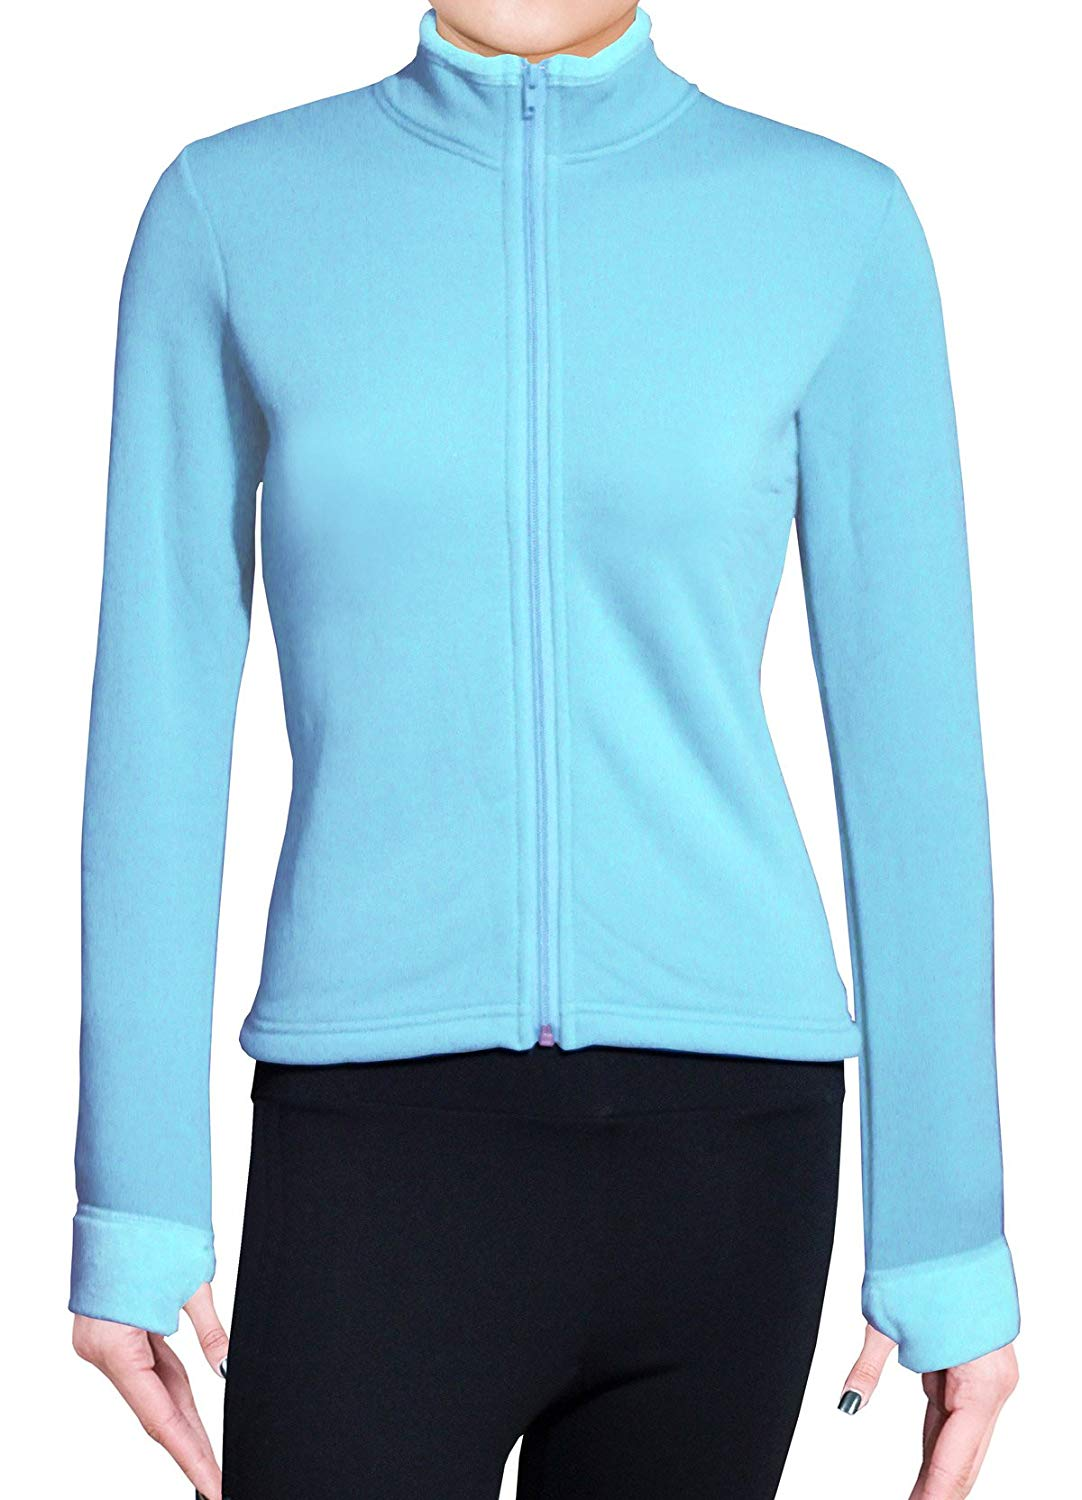 erotic-polartec-fleece-petite-blue-jacket-fuck-aishwarya